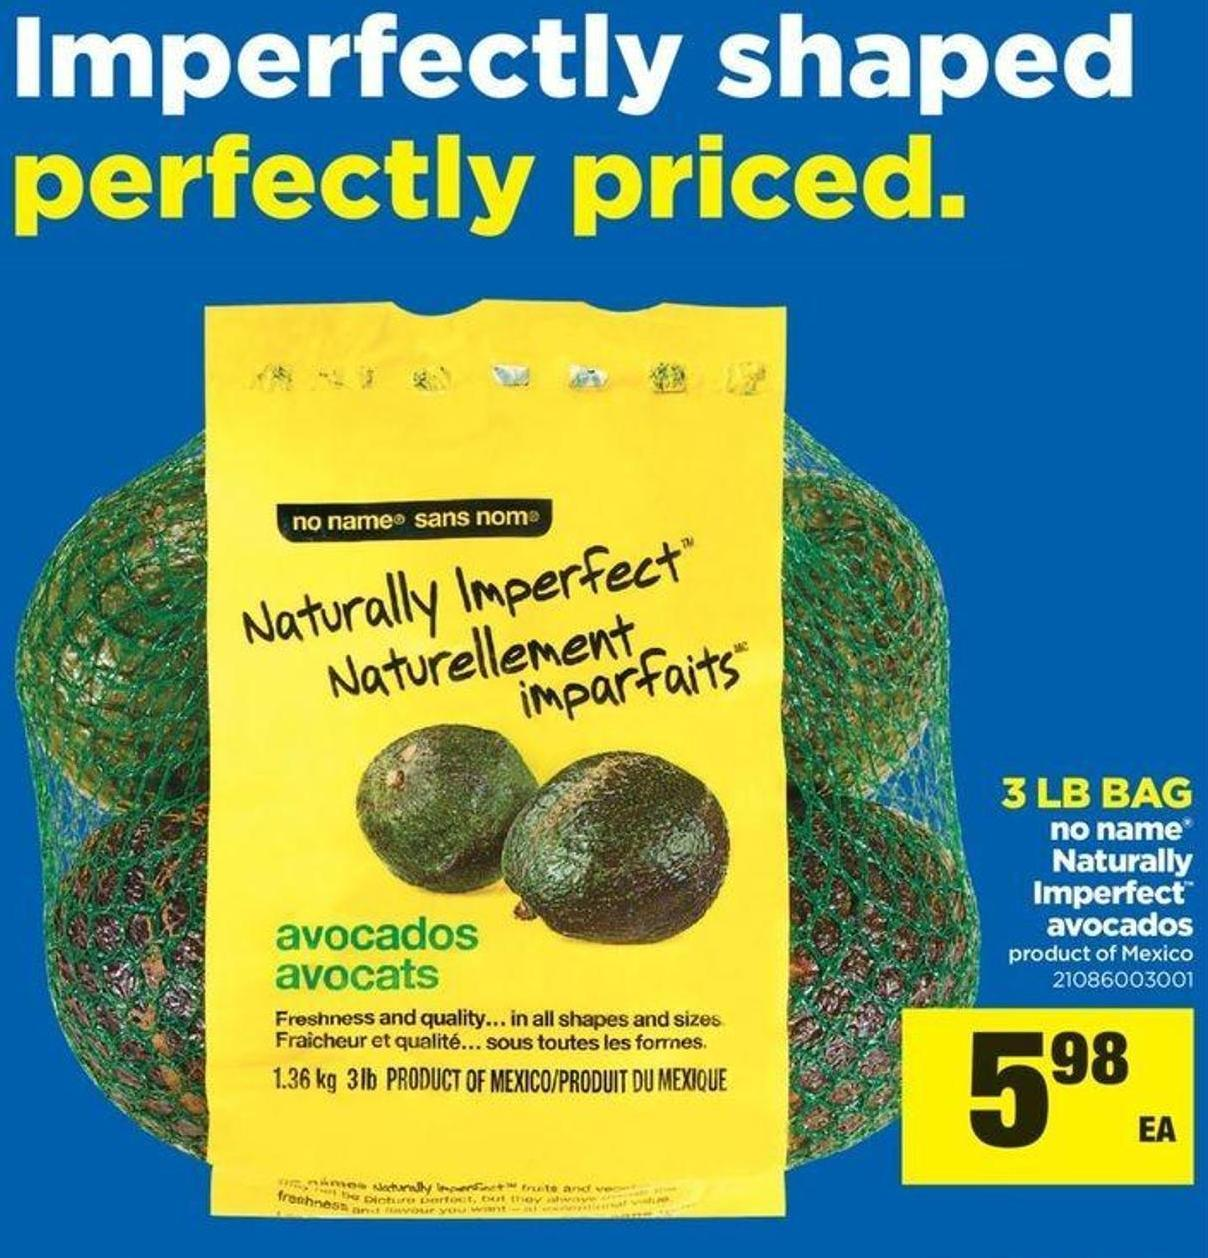 No Name Naturally Imperfect Avocados - 3 Lb Bag